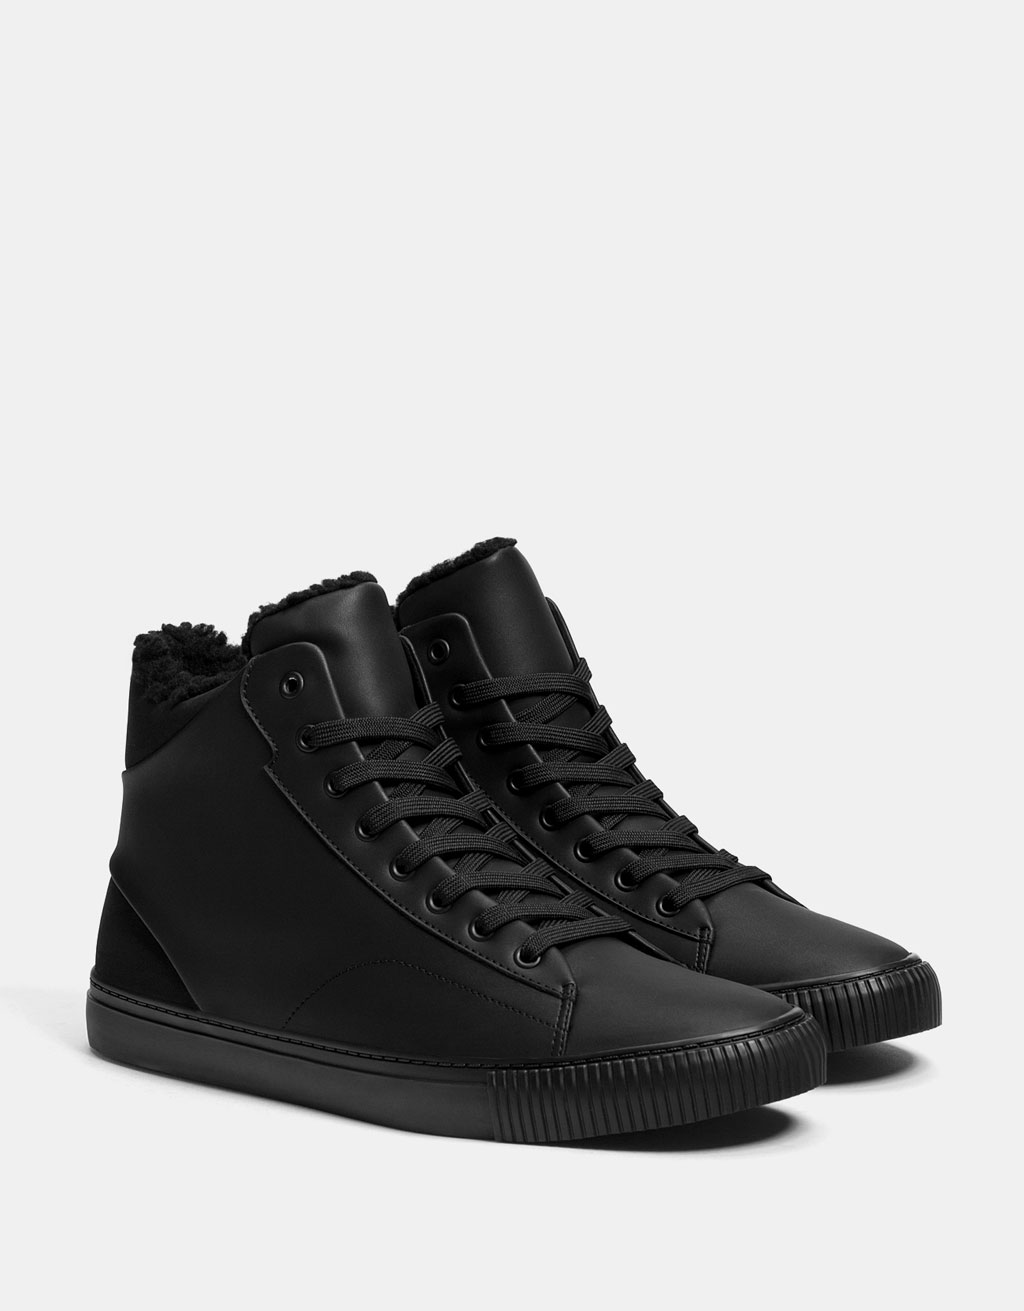 Men's lined lace-up high top sneakers